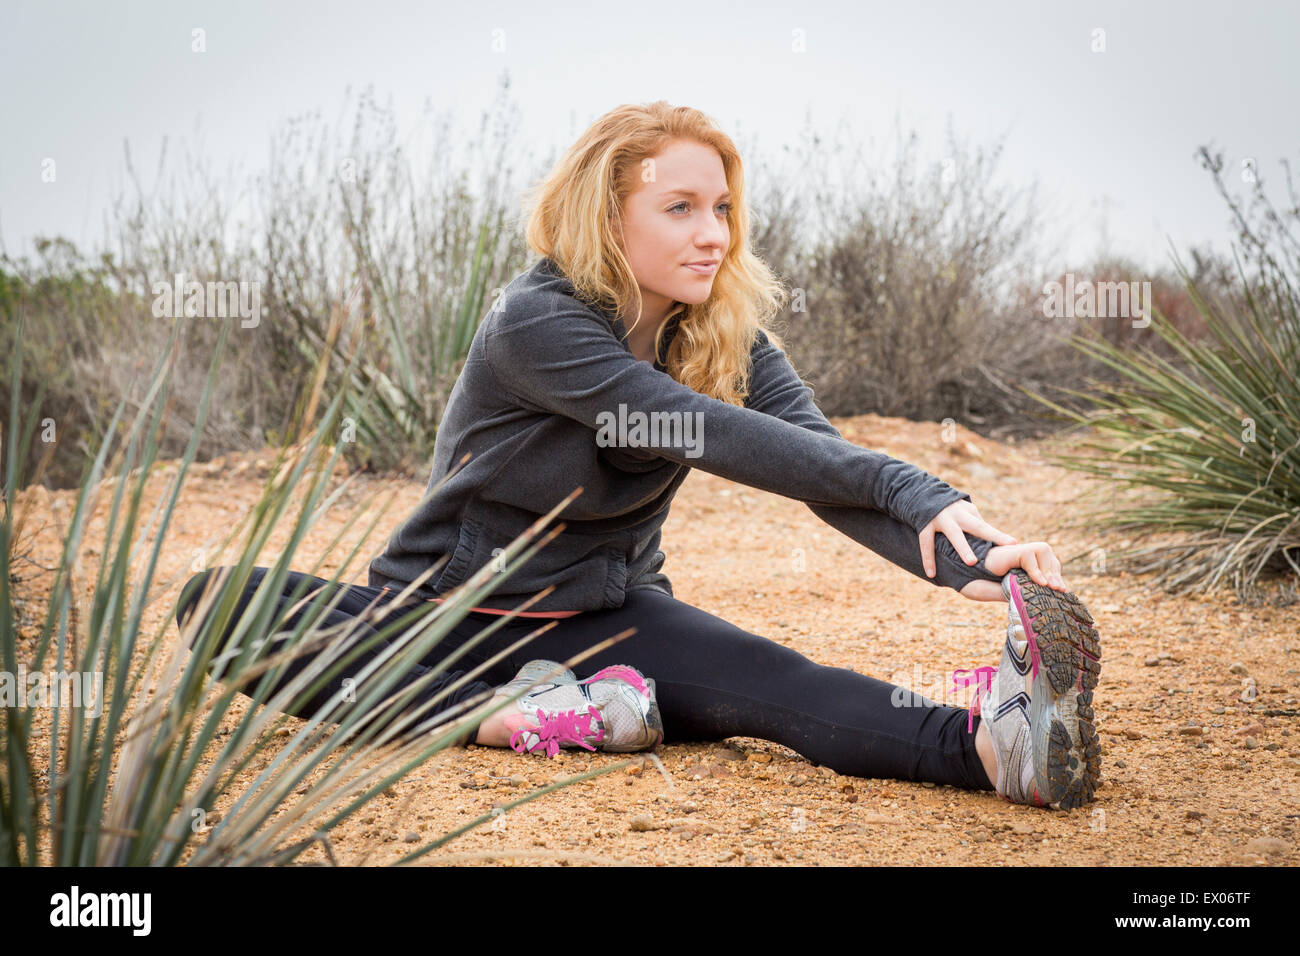 Young female runner stretching pour toucher les orteils Photo Stock